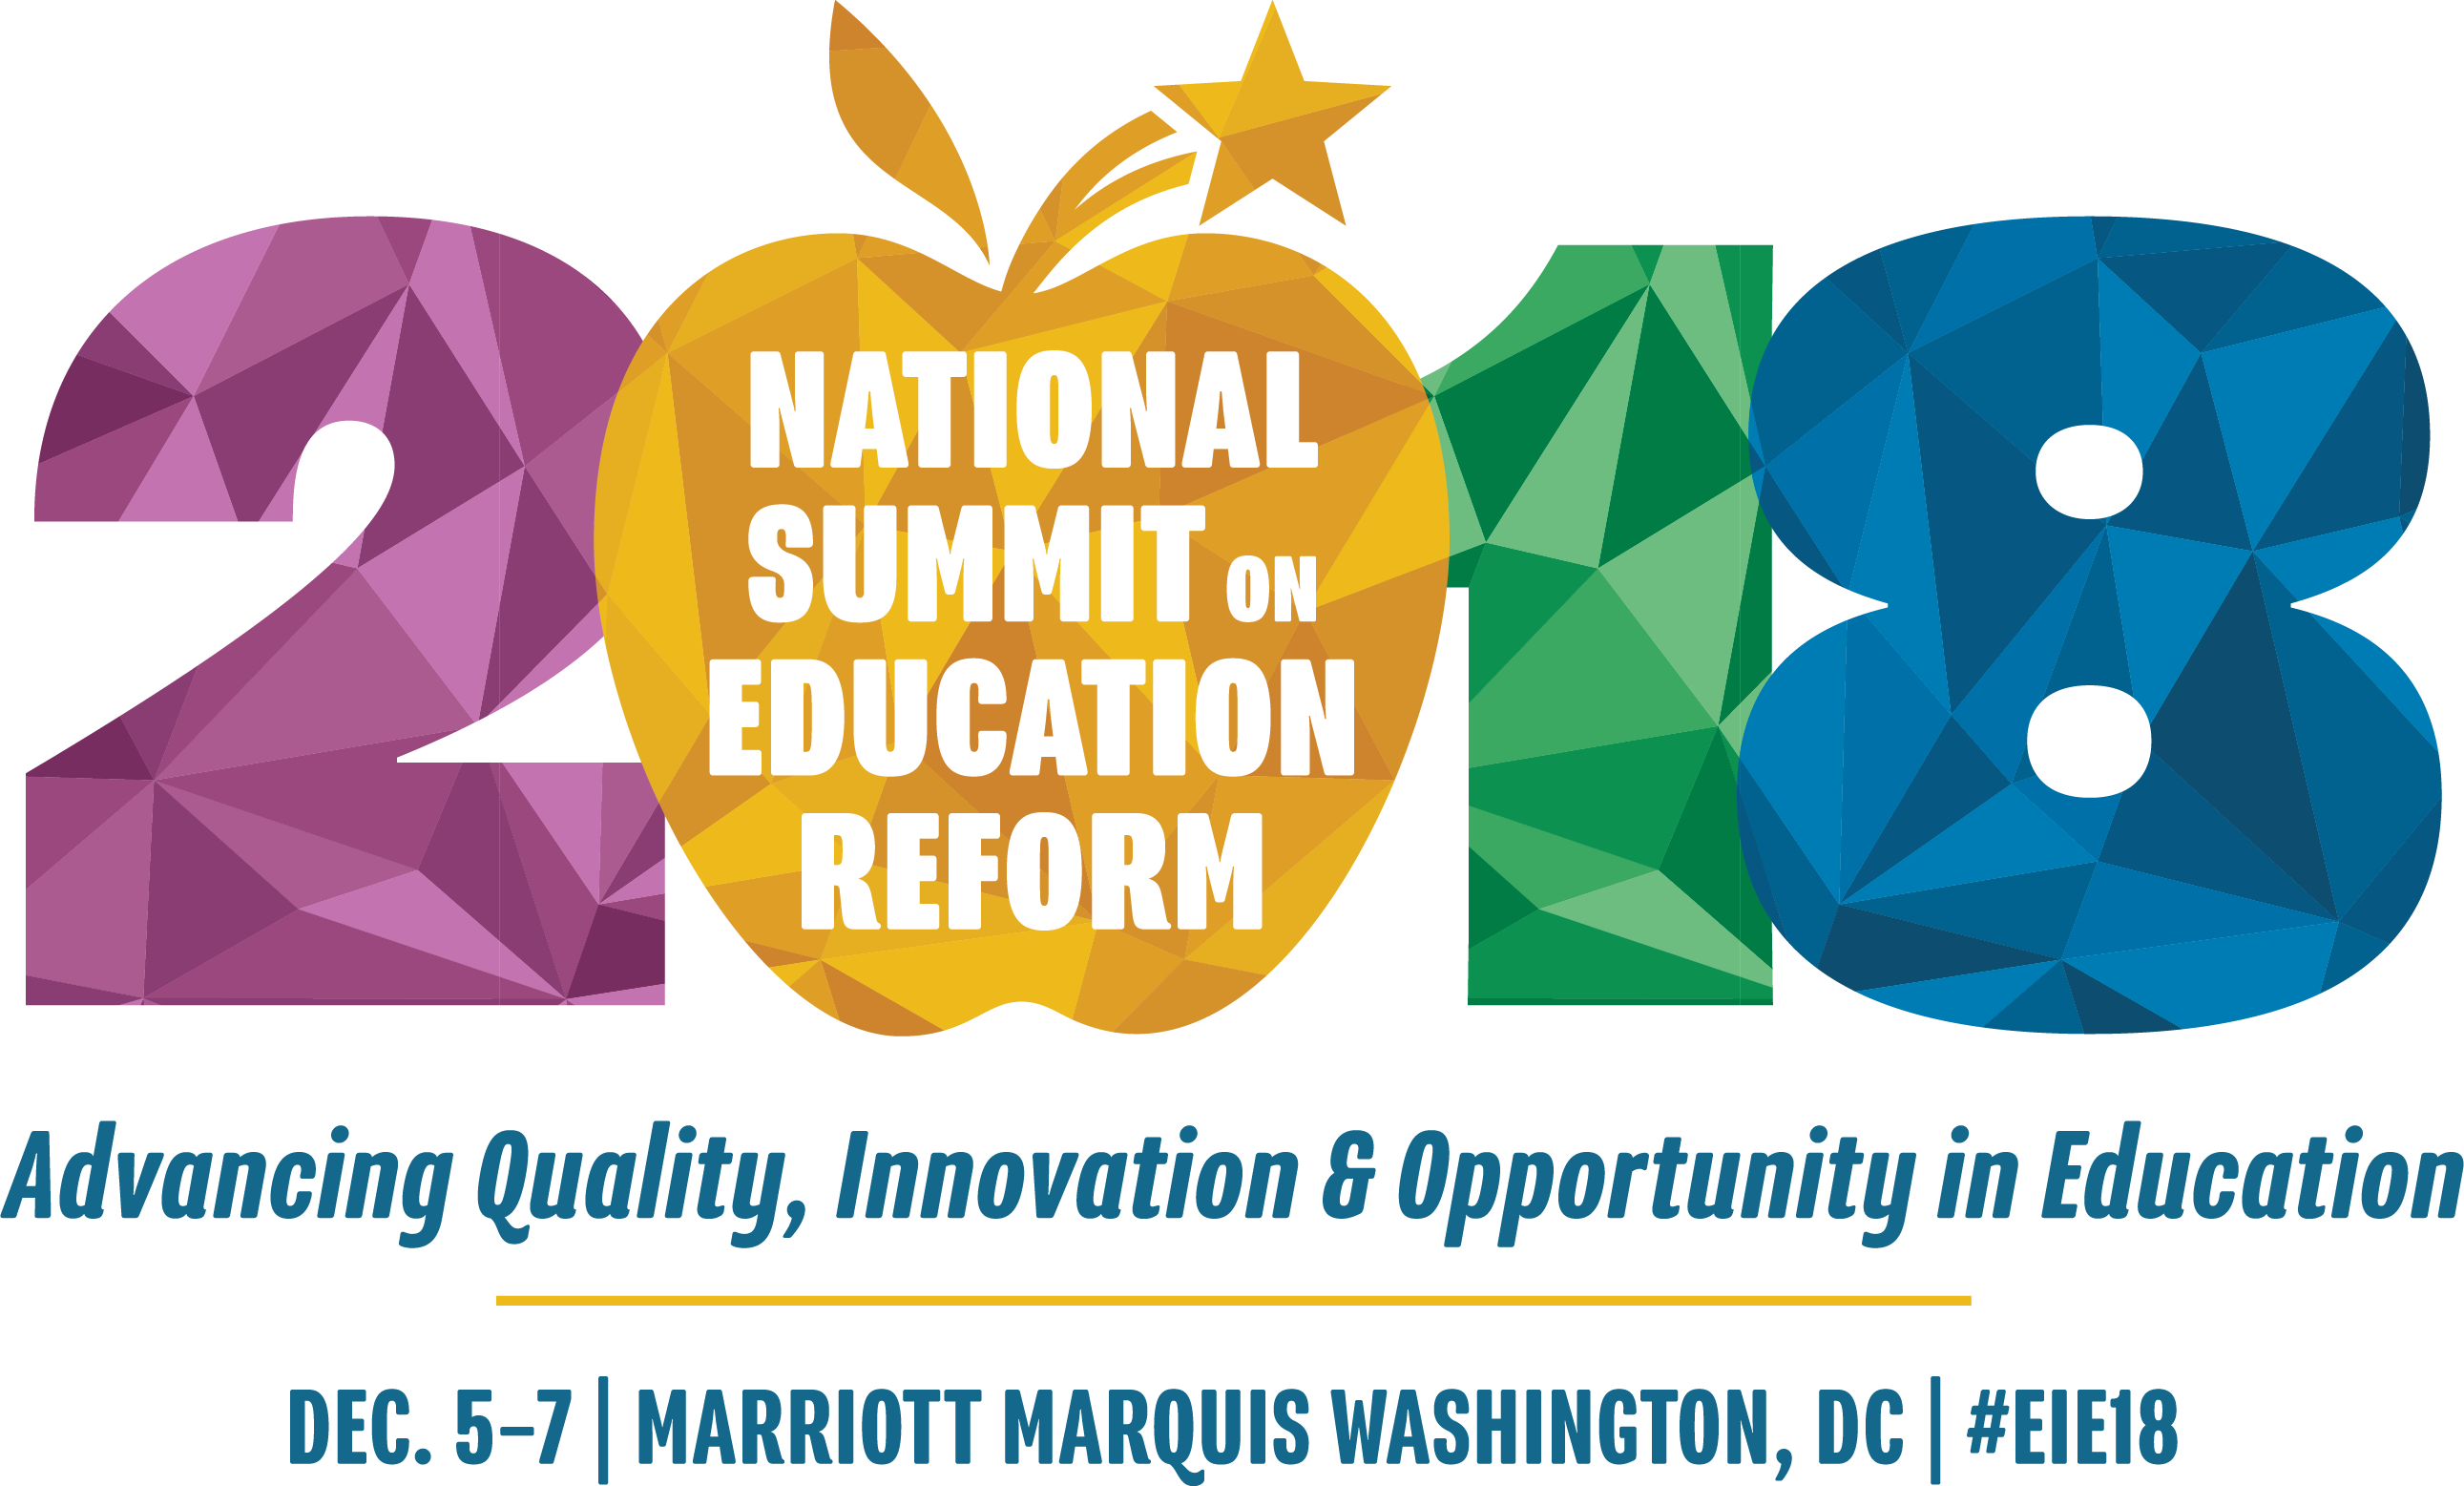 2018 National Summit on Education Reform Logo with colored numbers, tagline and dateline